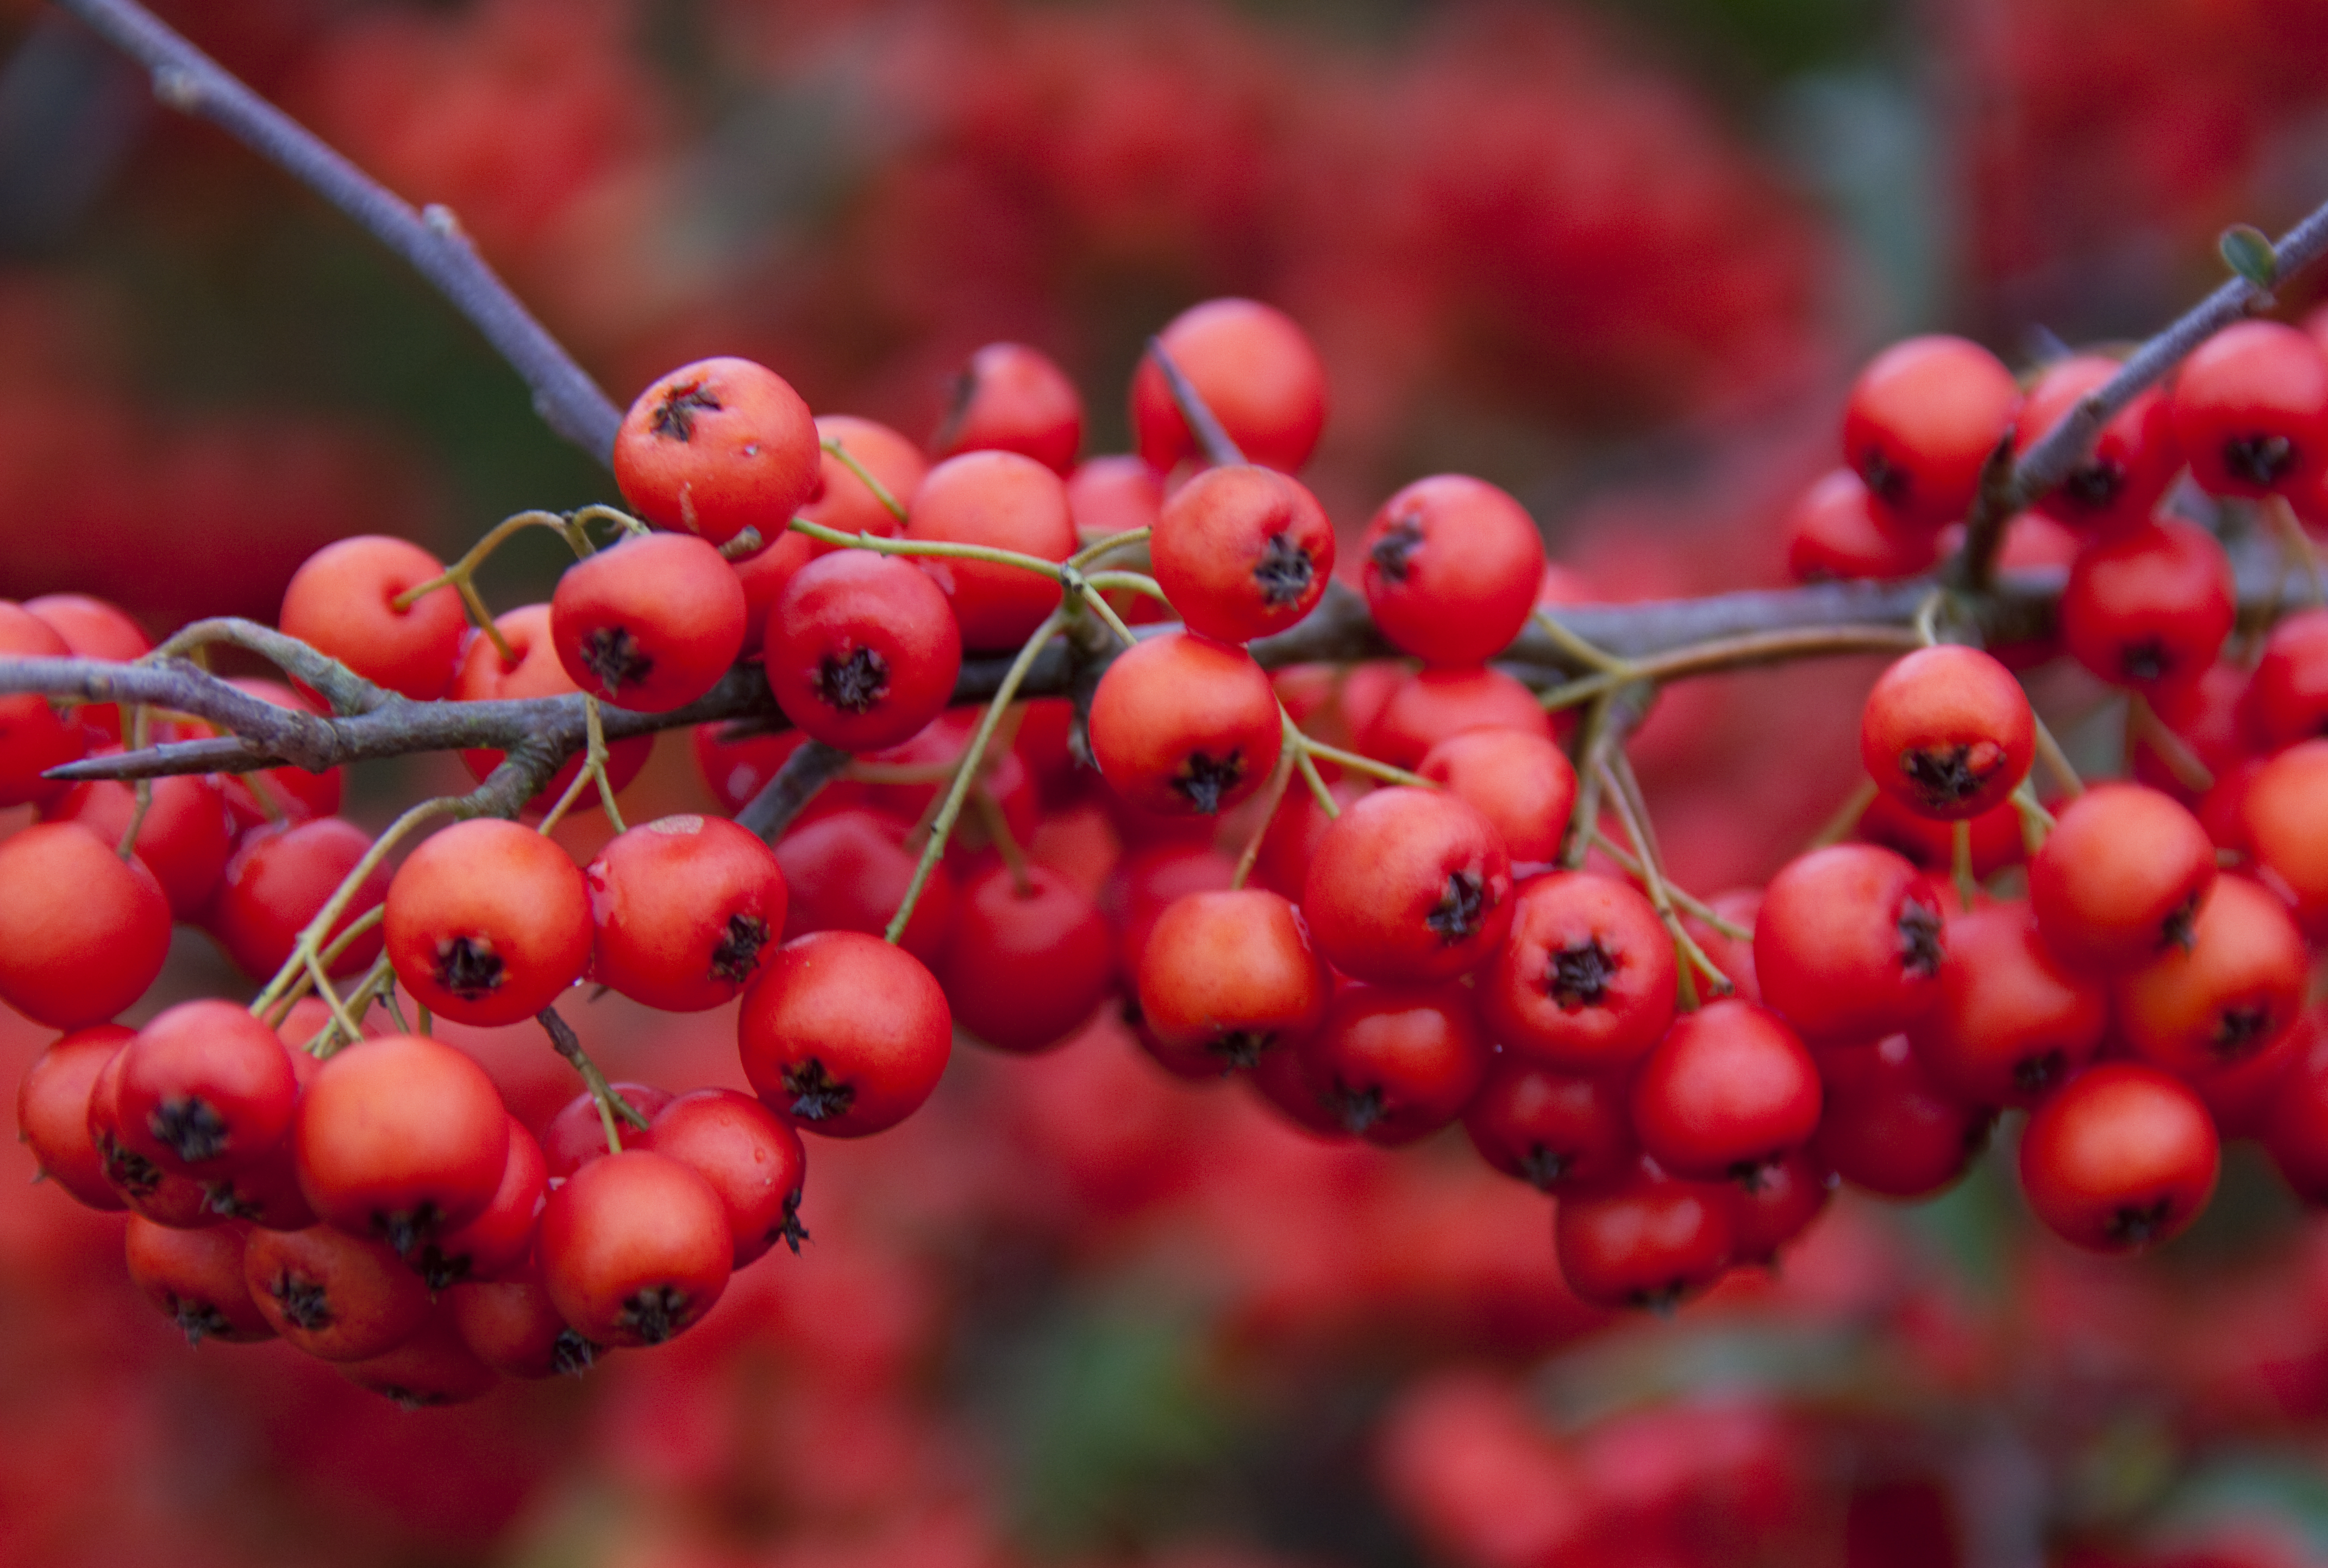 Red berries photo